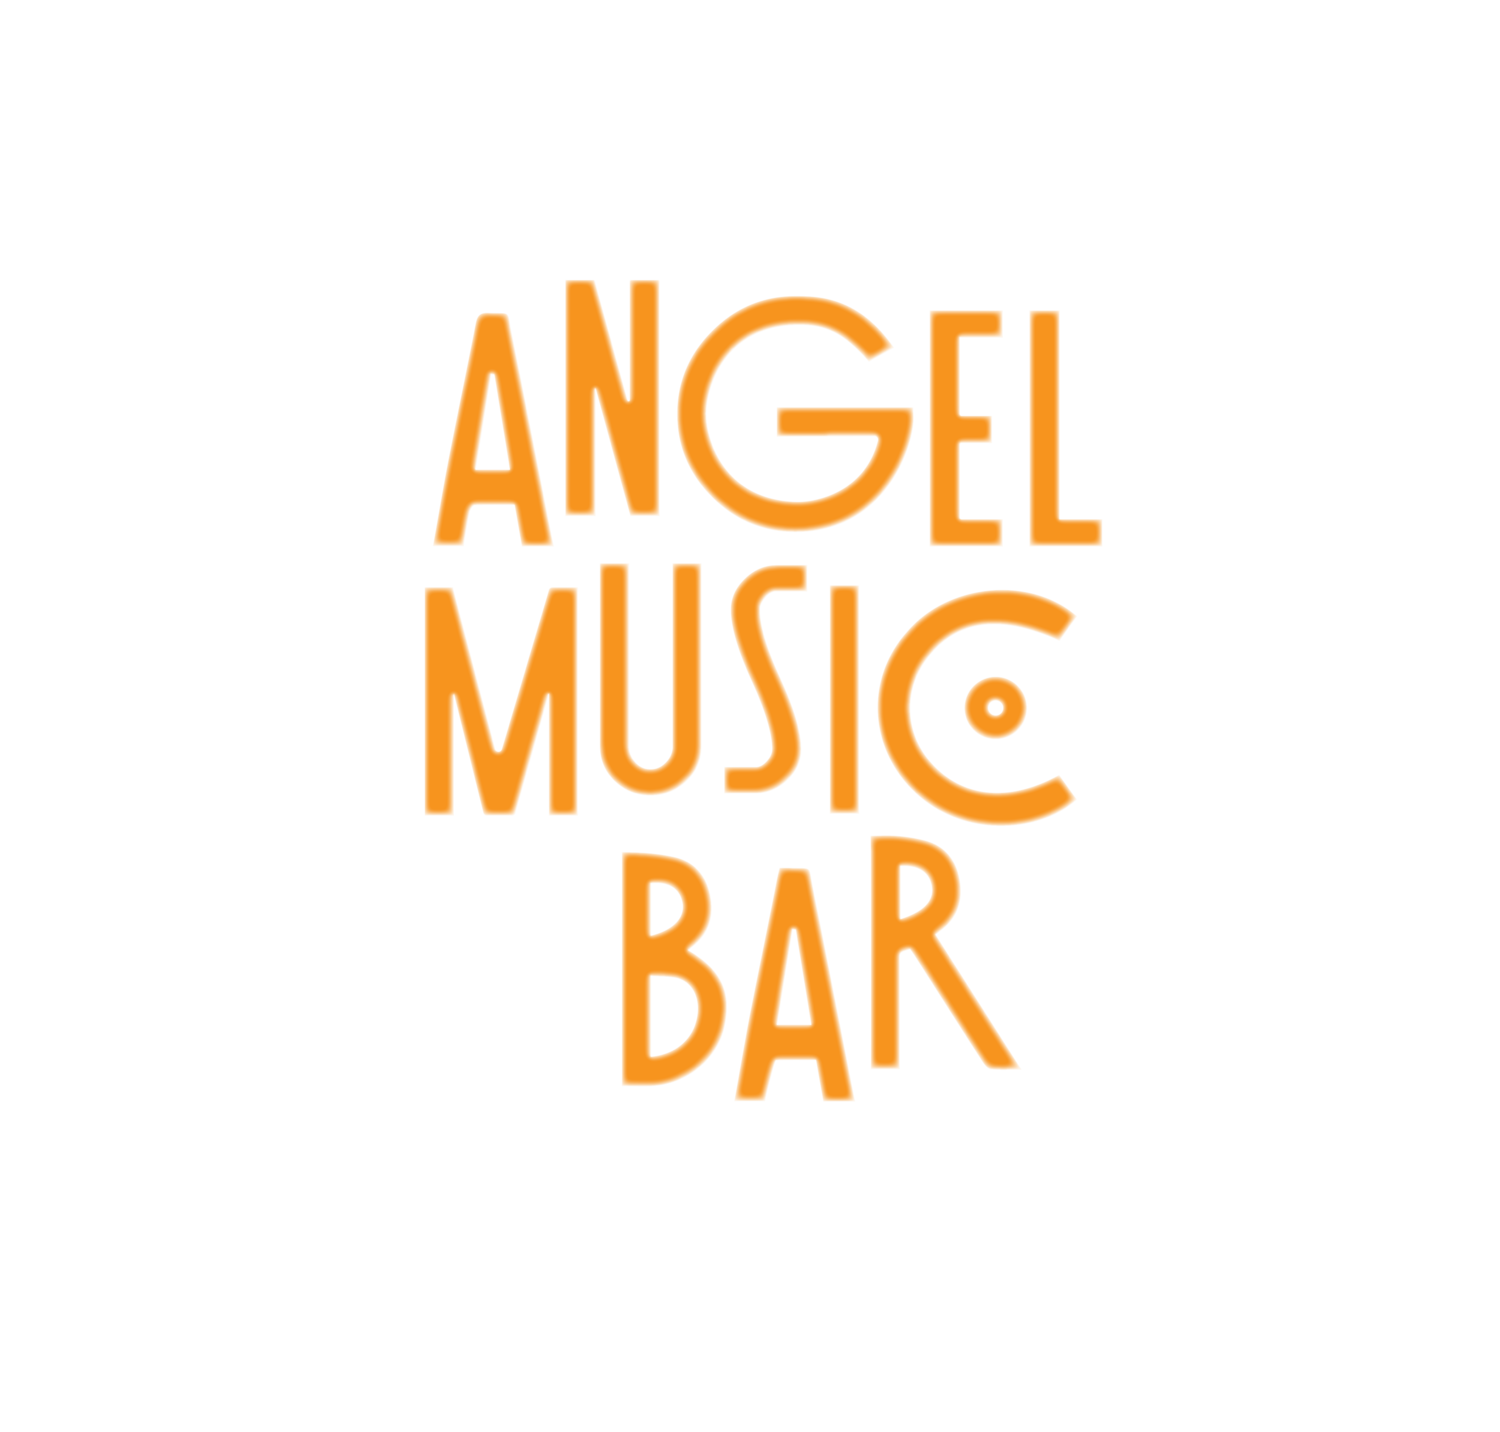 Angel Music Bar